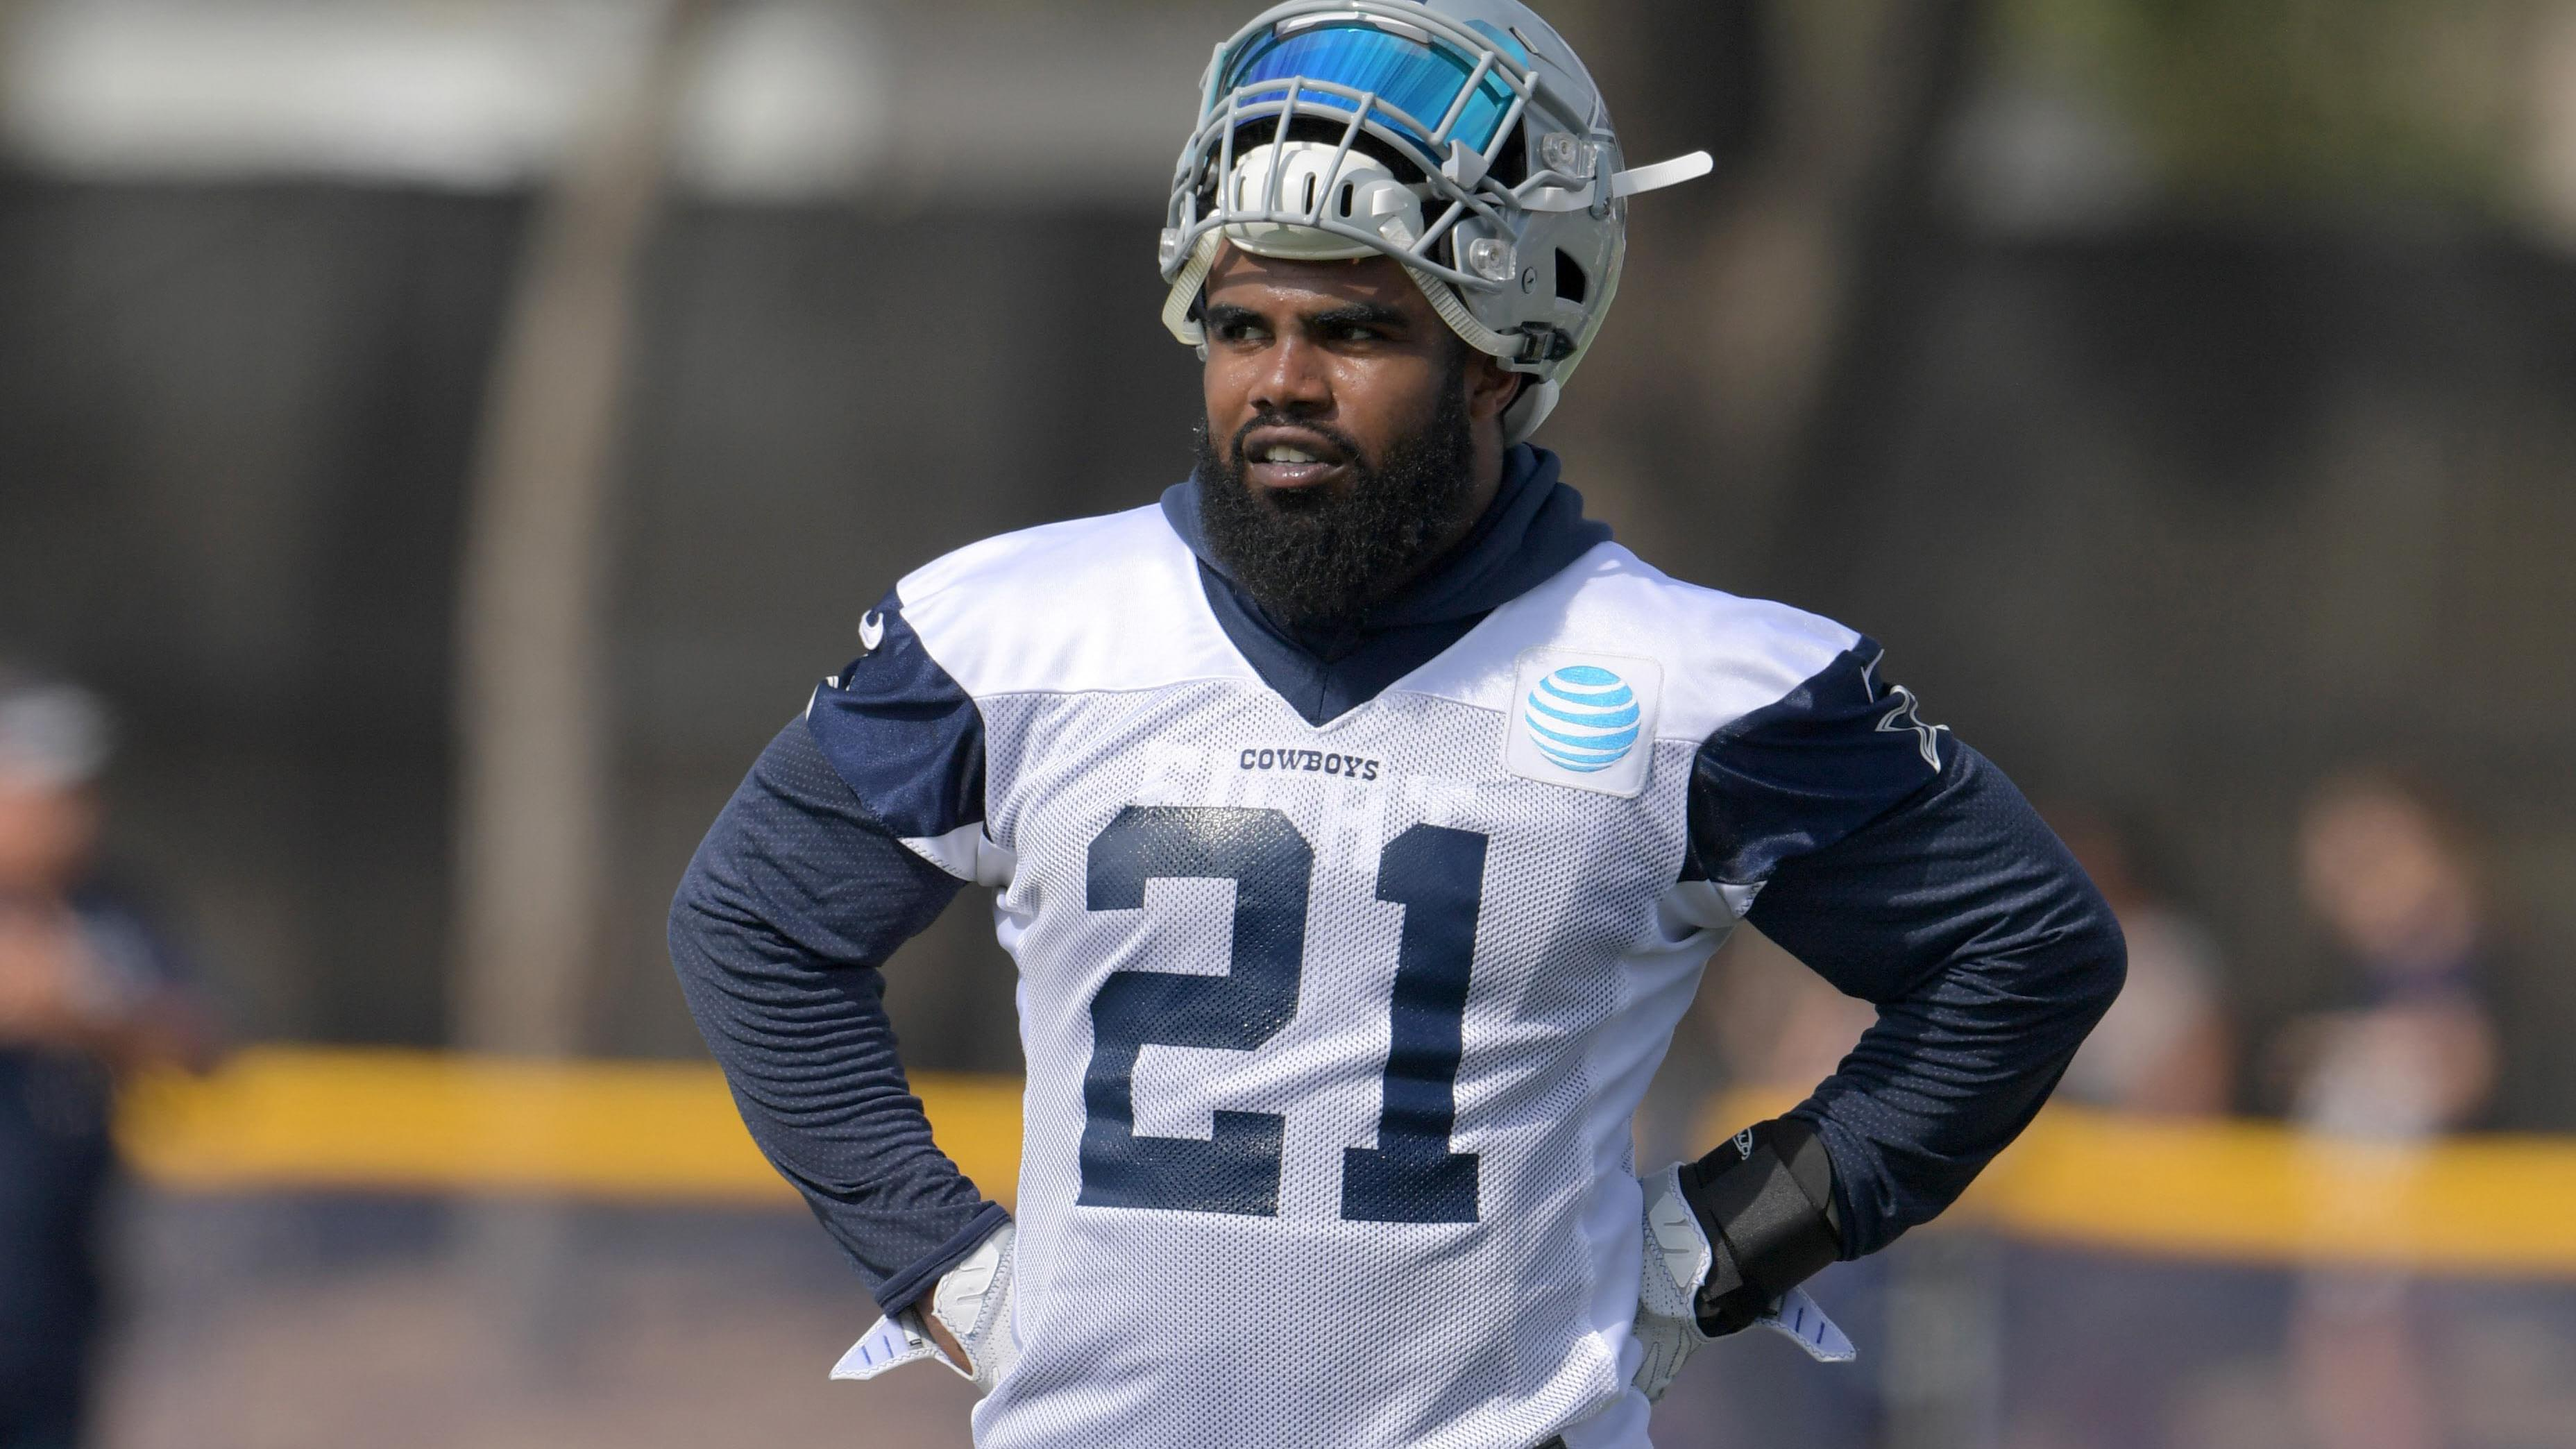 finest selection 8db8b 422e4 DONE DEAL! Zeke Elliot & Dallas Cowboys Agree to Huge ...